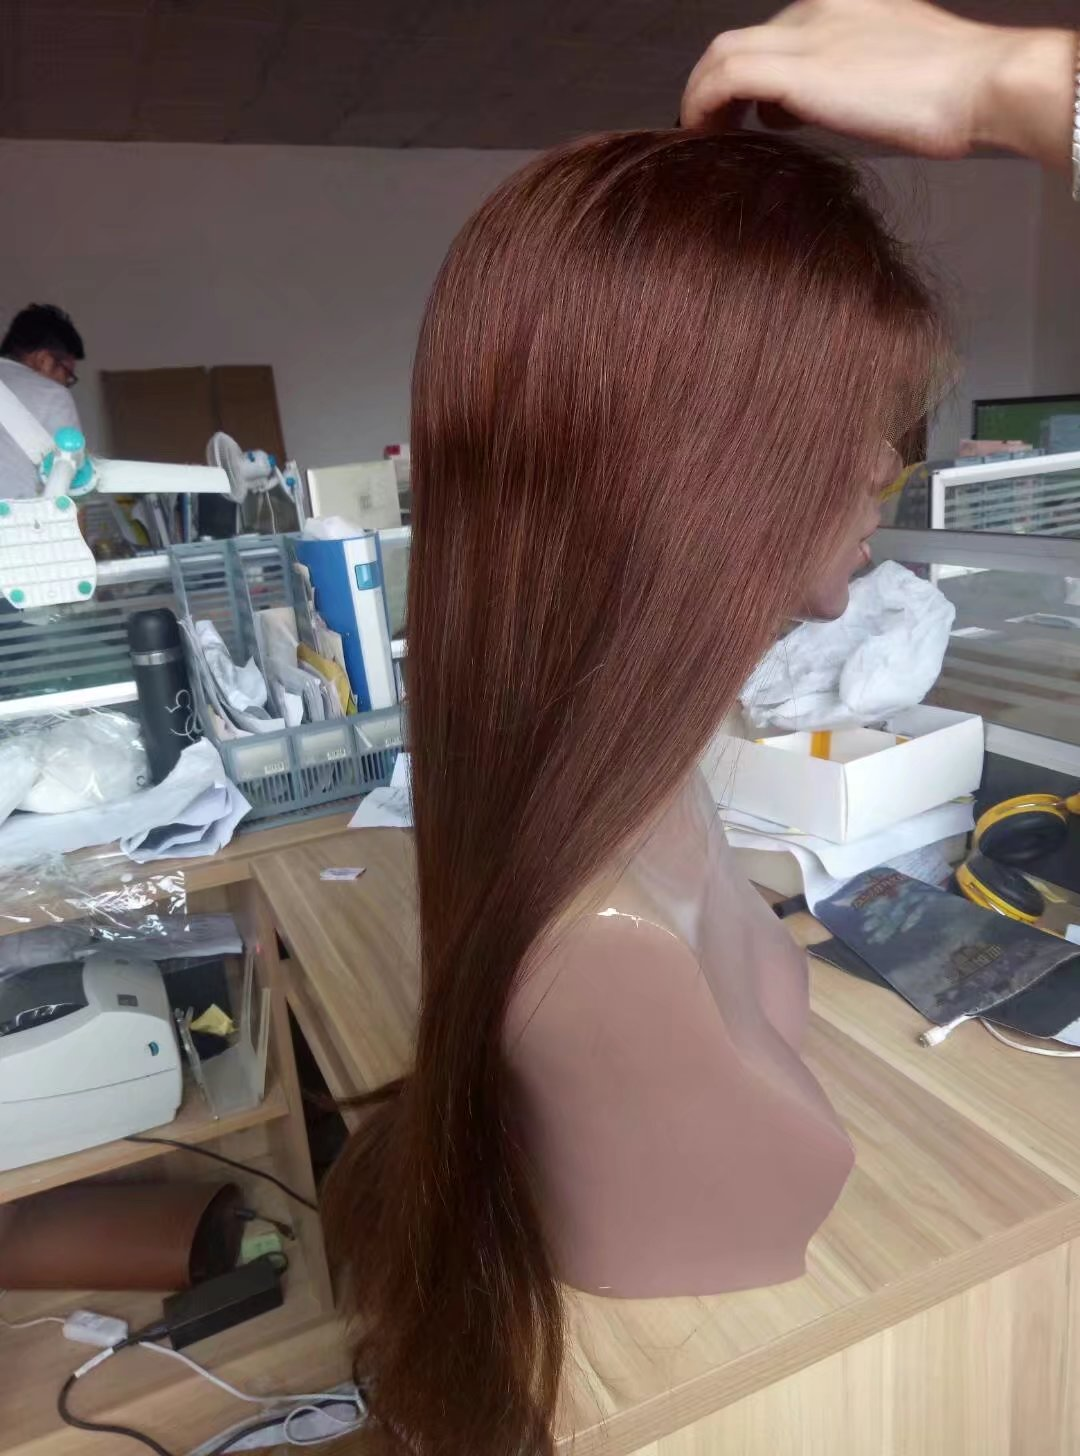 Come To China And Visit Our Factory To Buy Wholesale Hair